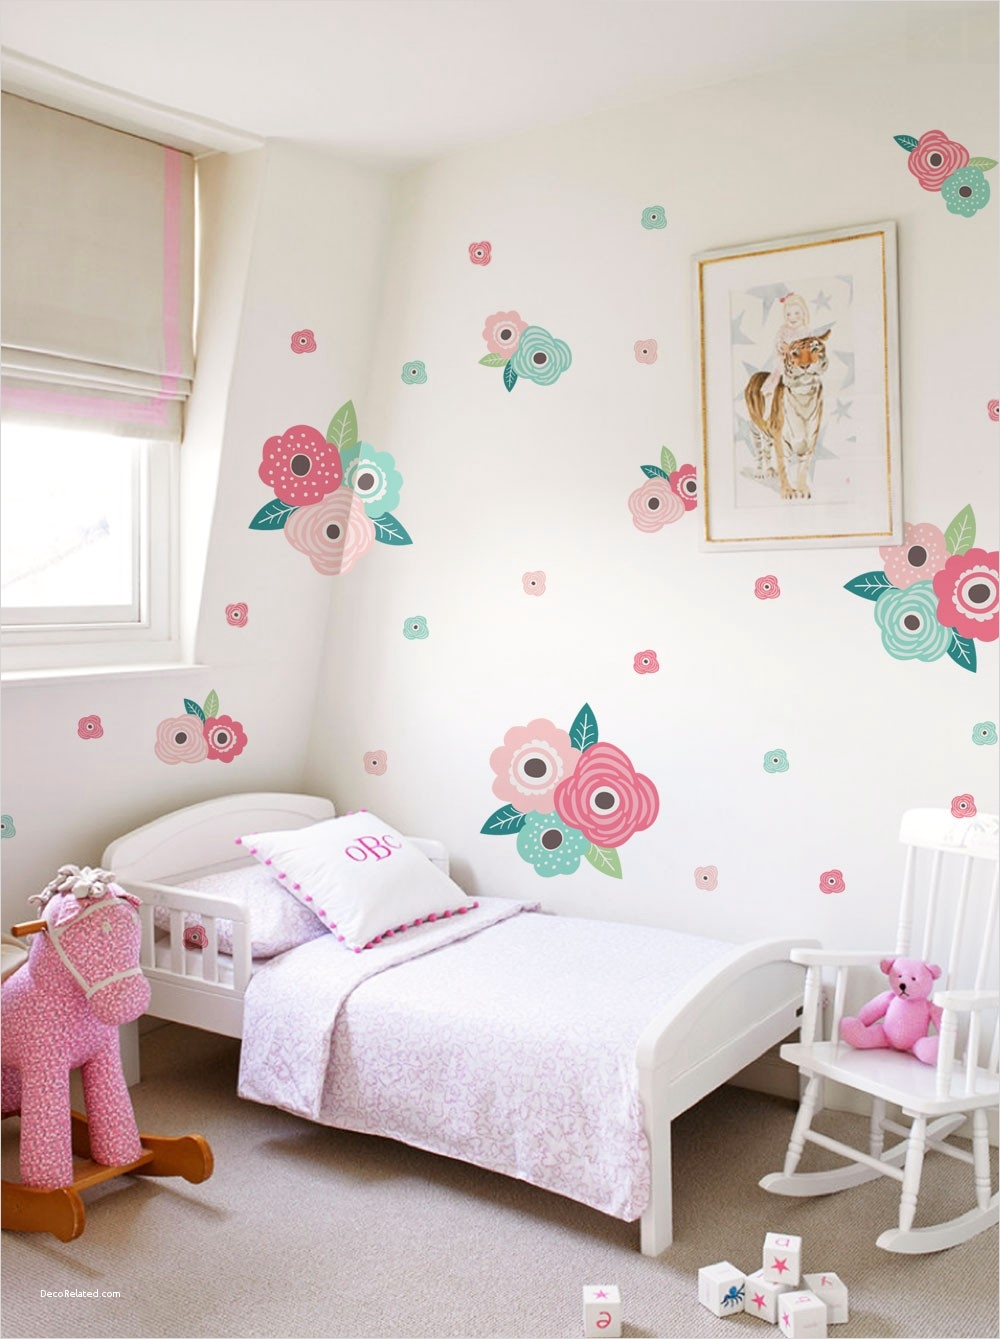 Spring Floral Bedroom Decor 87 Kids Flower Wall Sticker Spring Pink and Mint Blooms Peel and Stick Wall Stickers Kids Room Decor 2